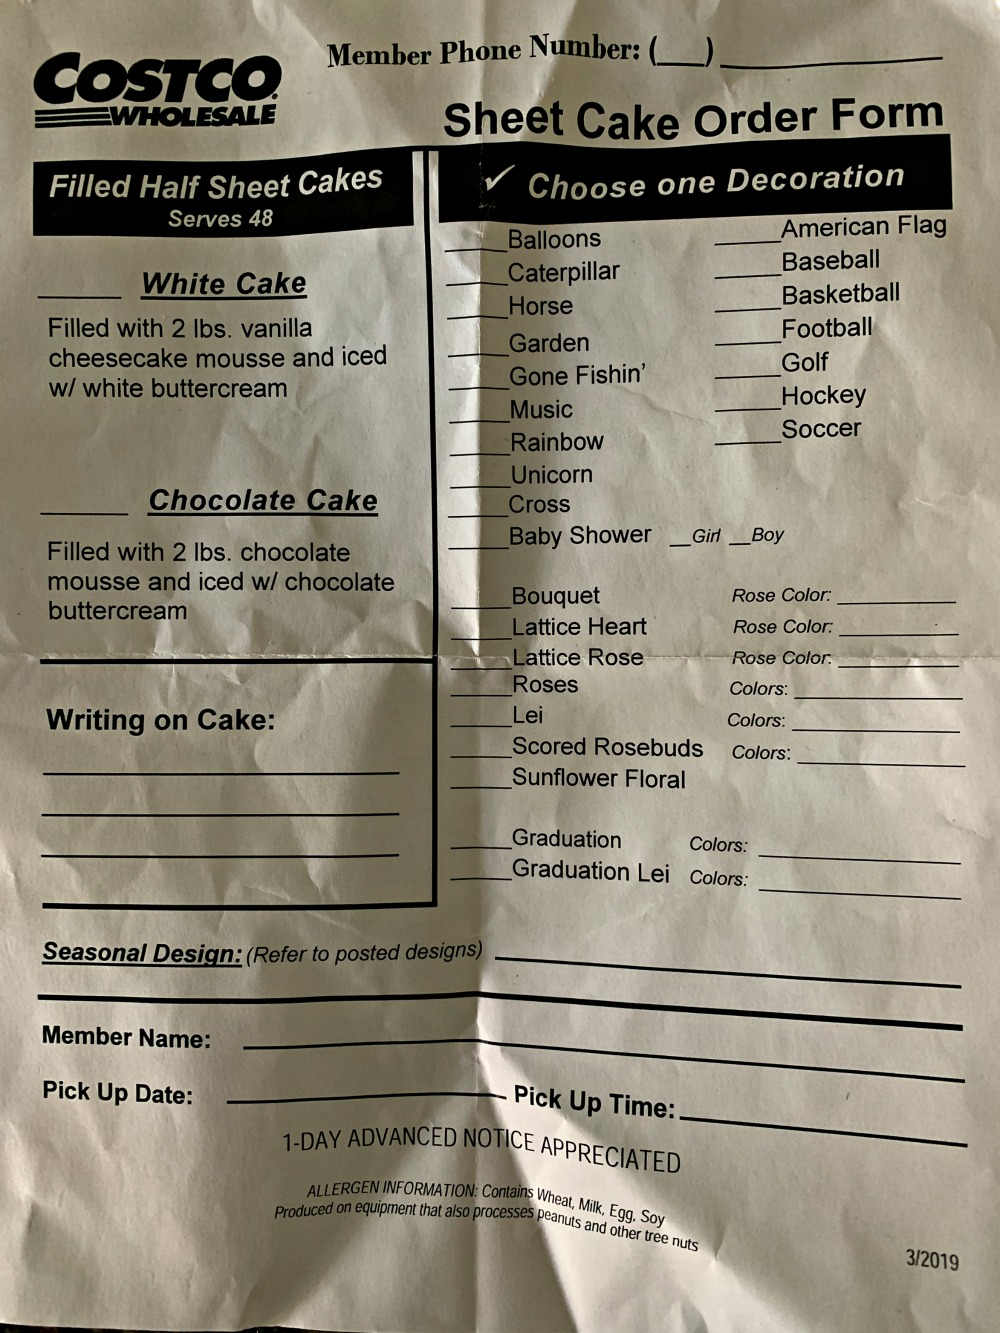 Costco cake designs order form PDF: how to order a cake from Costco